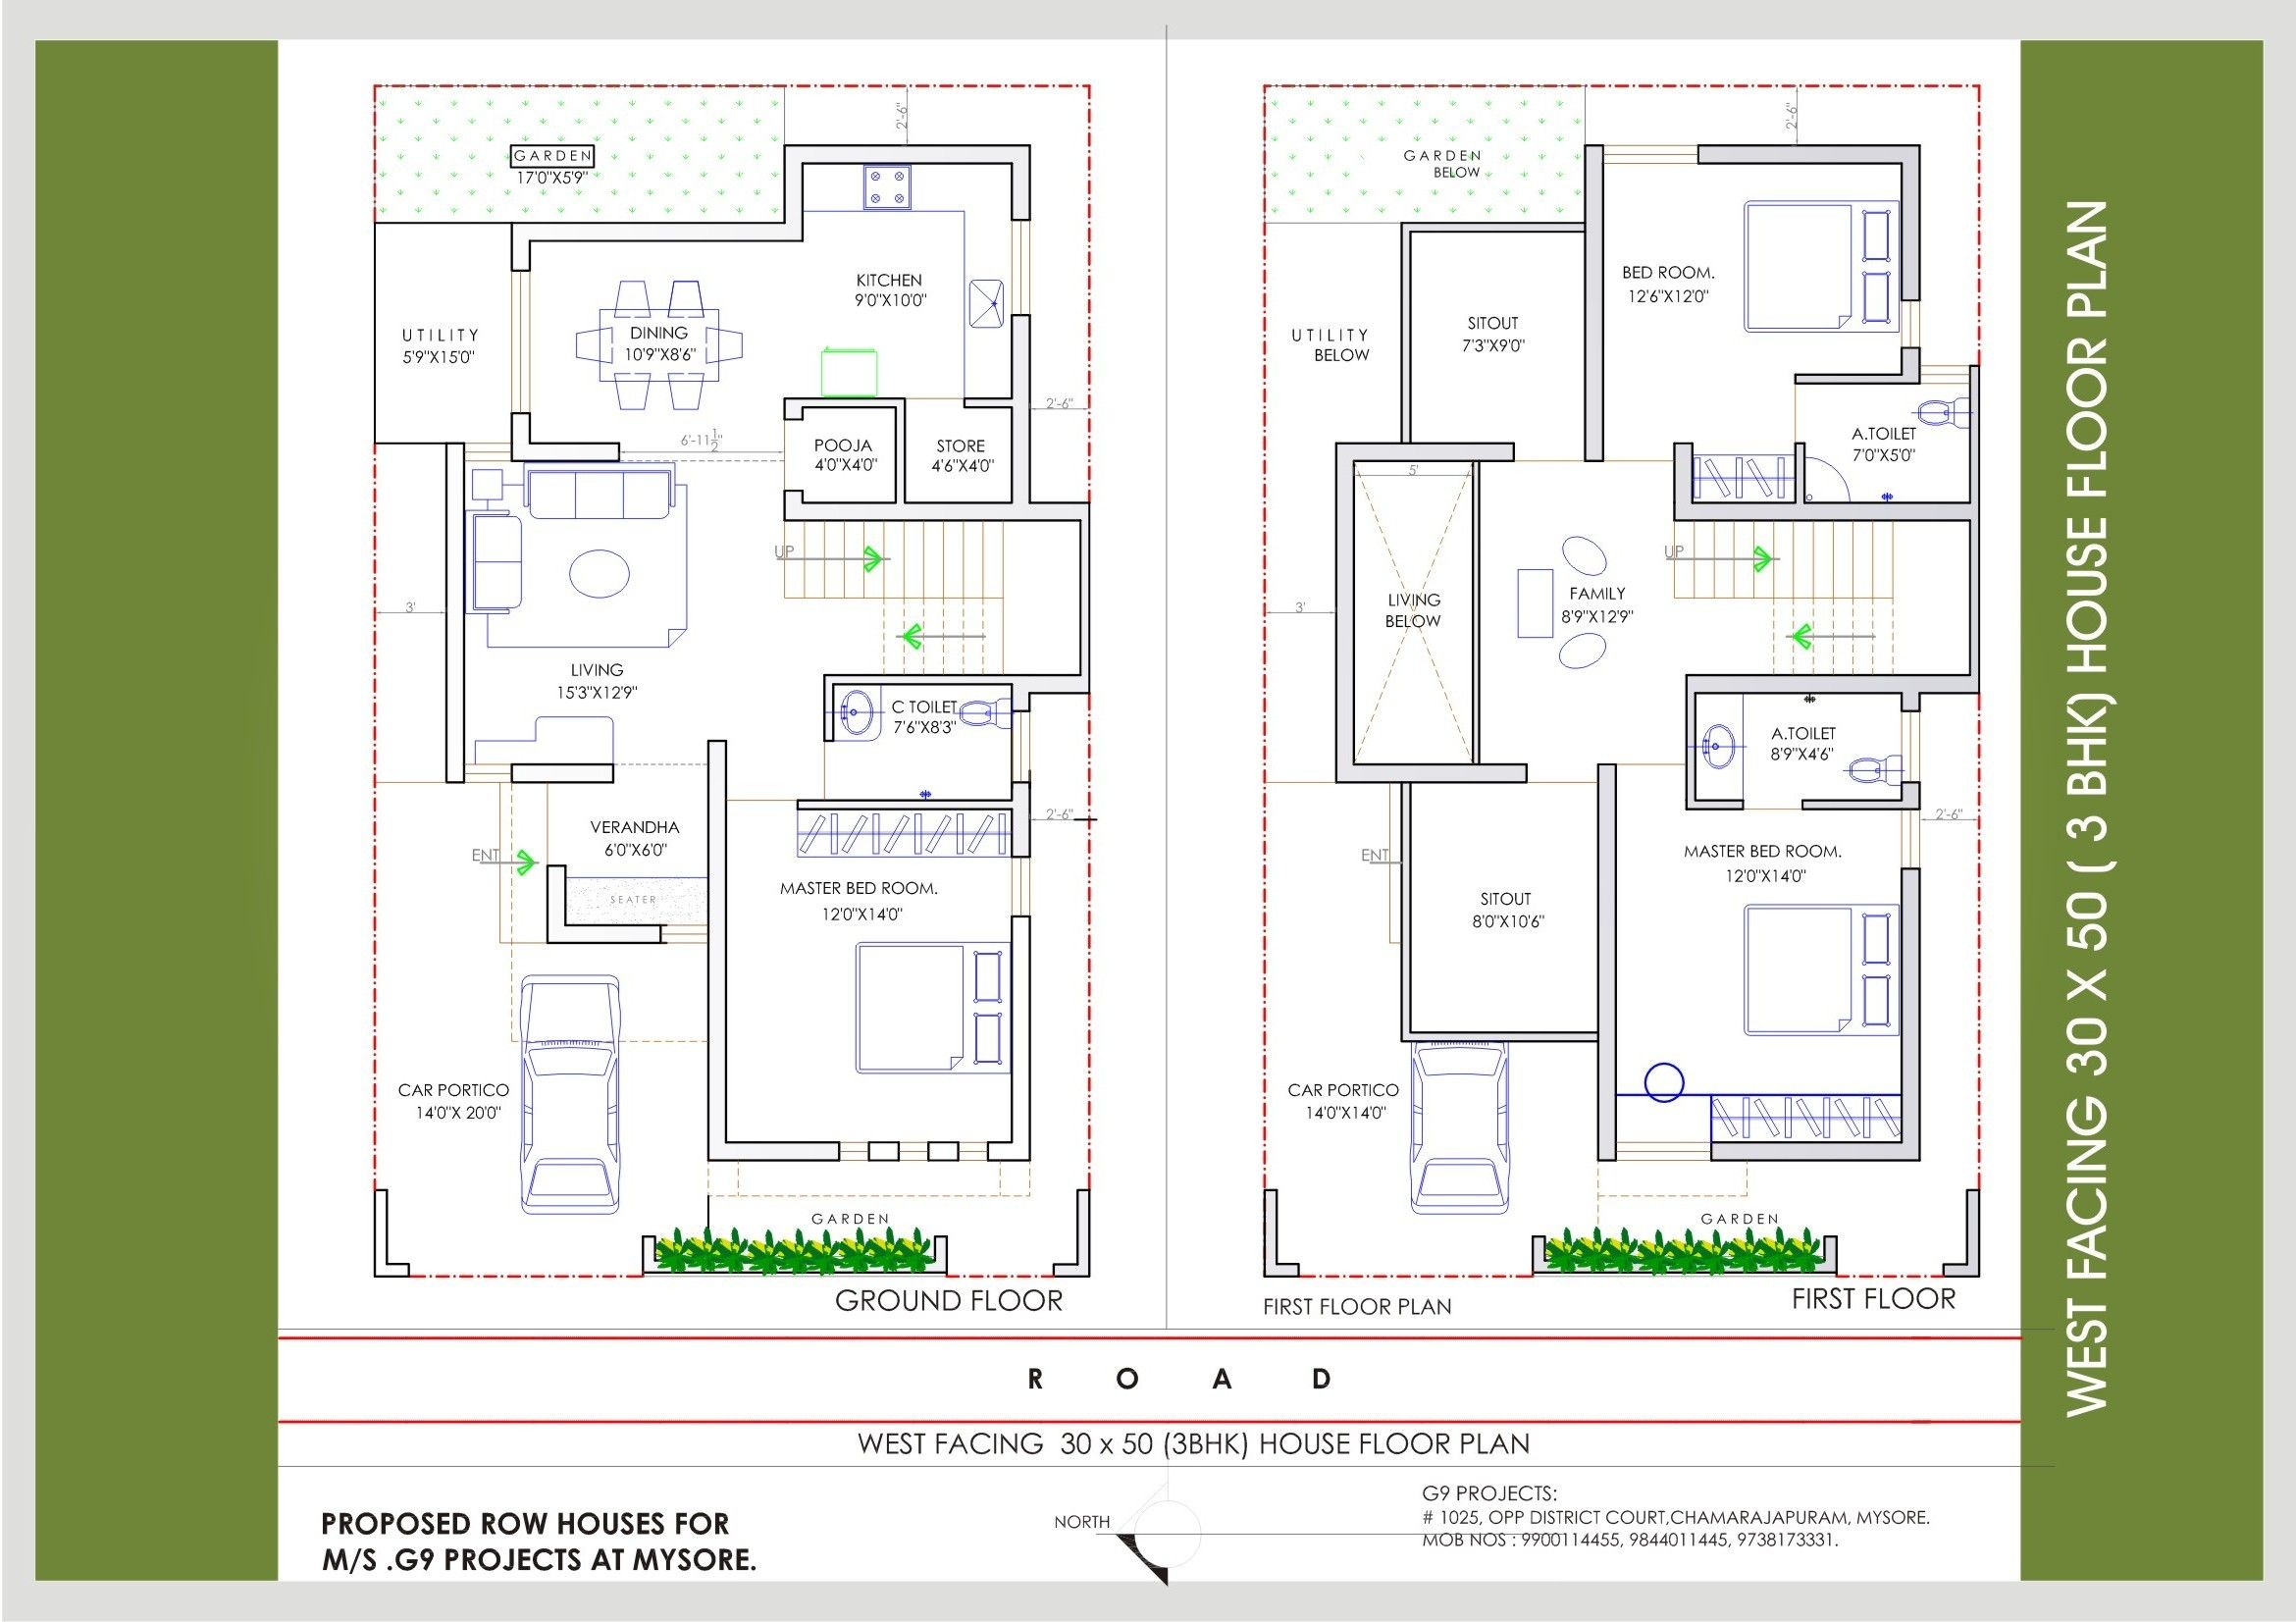 House Plan West Facing Plans 45degreesdesign Com Amazing 50 X West Facing House Budget House Plans Indian House Plans